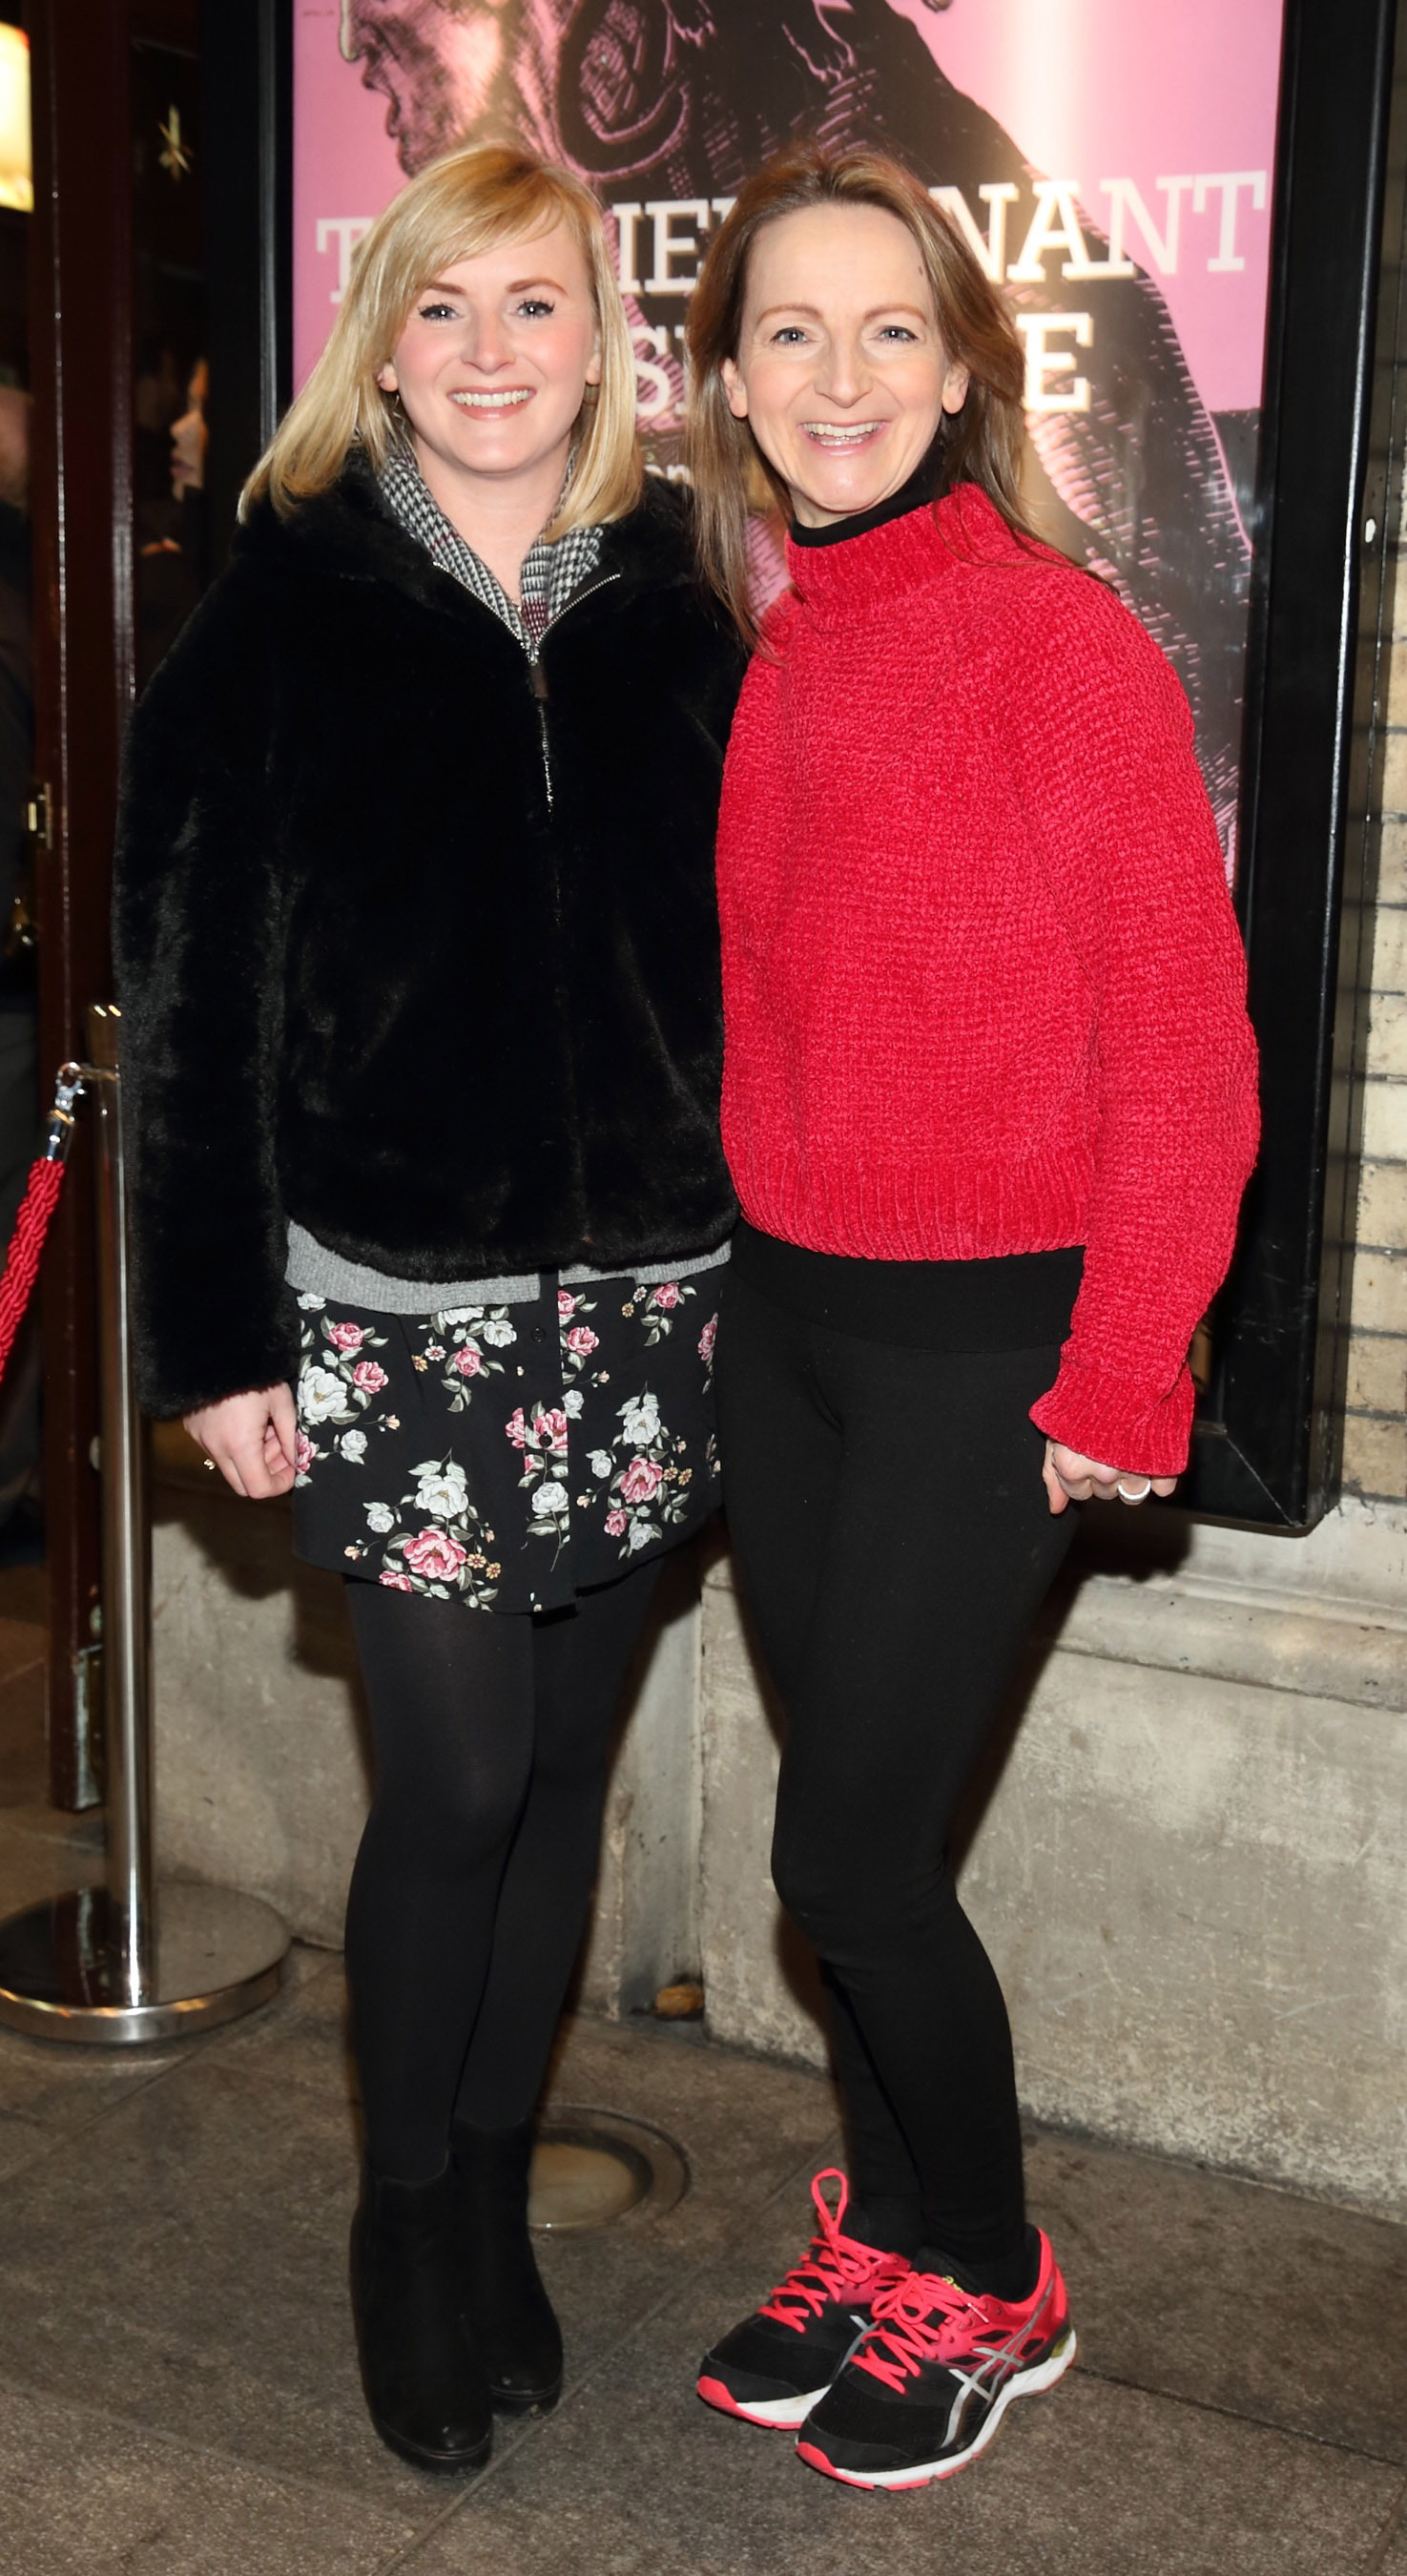 Jan-Marie Sheahan and Norma Sheahan pictured at the opening of the Gaiety Theatre's major new production of Martin McDonagh's 'The Lieutenant of Inishmore', which will run at the Gaiety Theatre until 14th March.